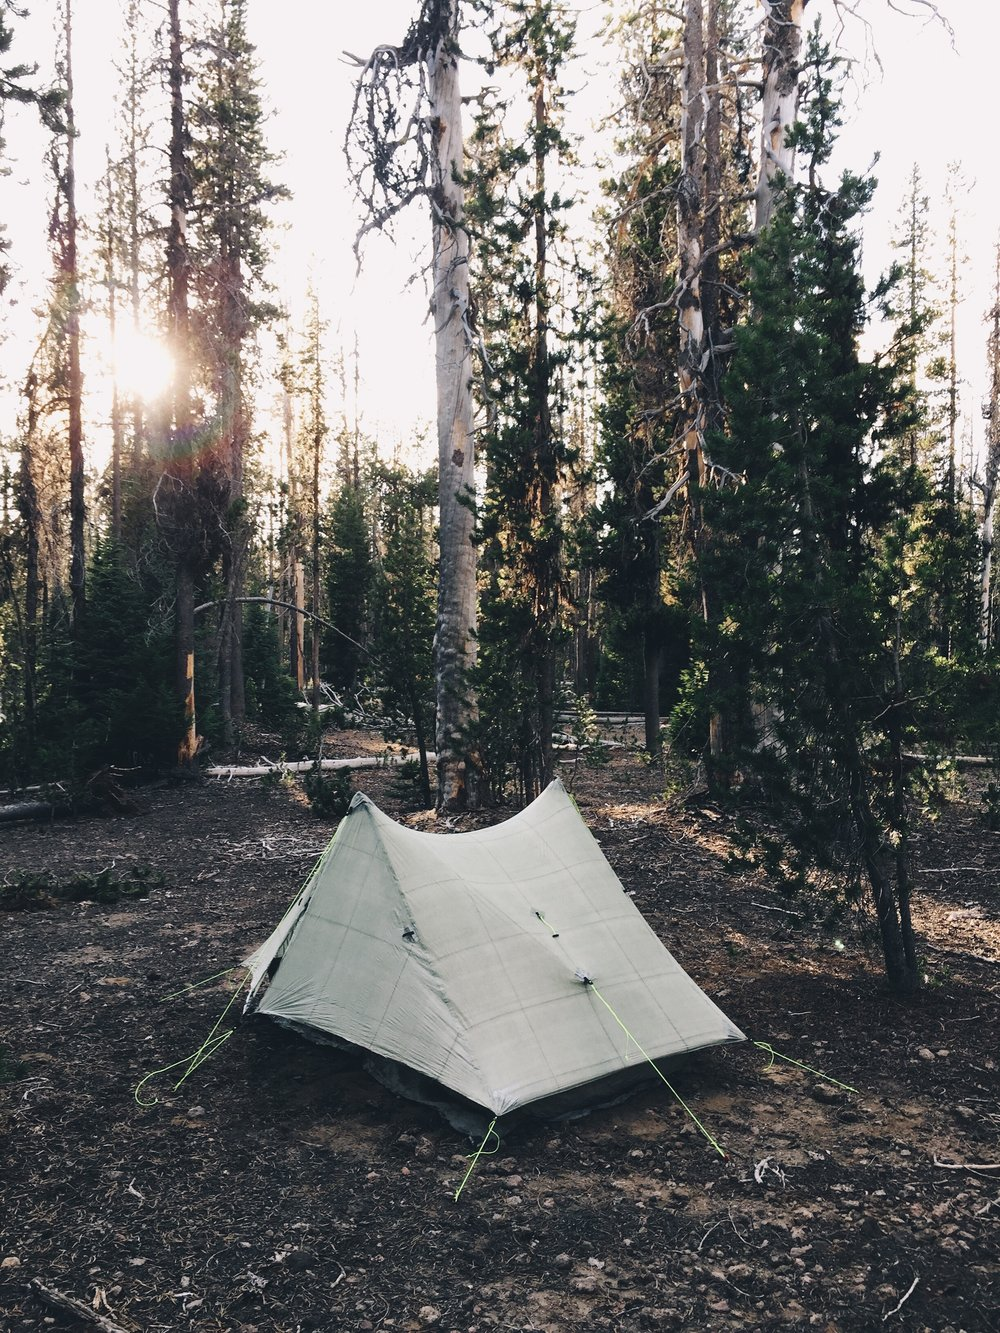 First night camped alone.